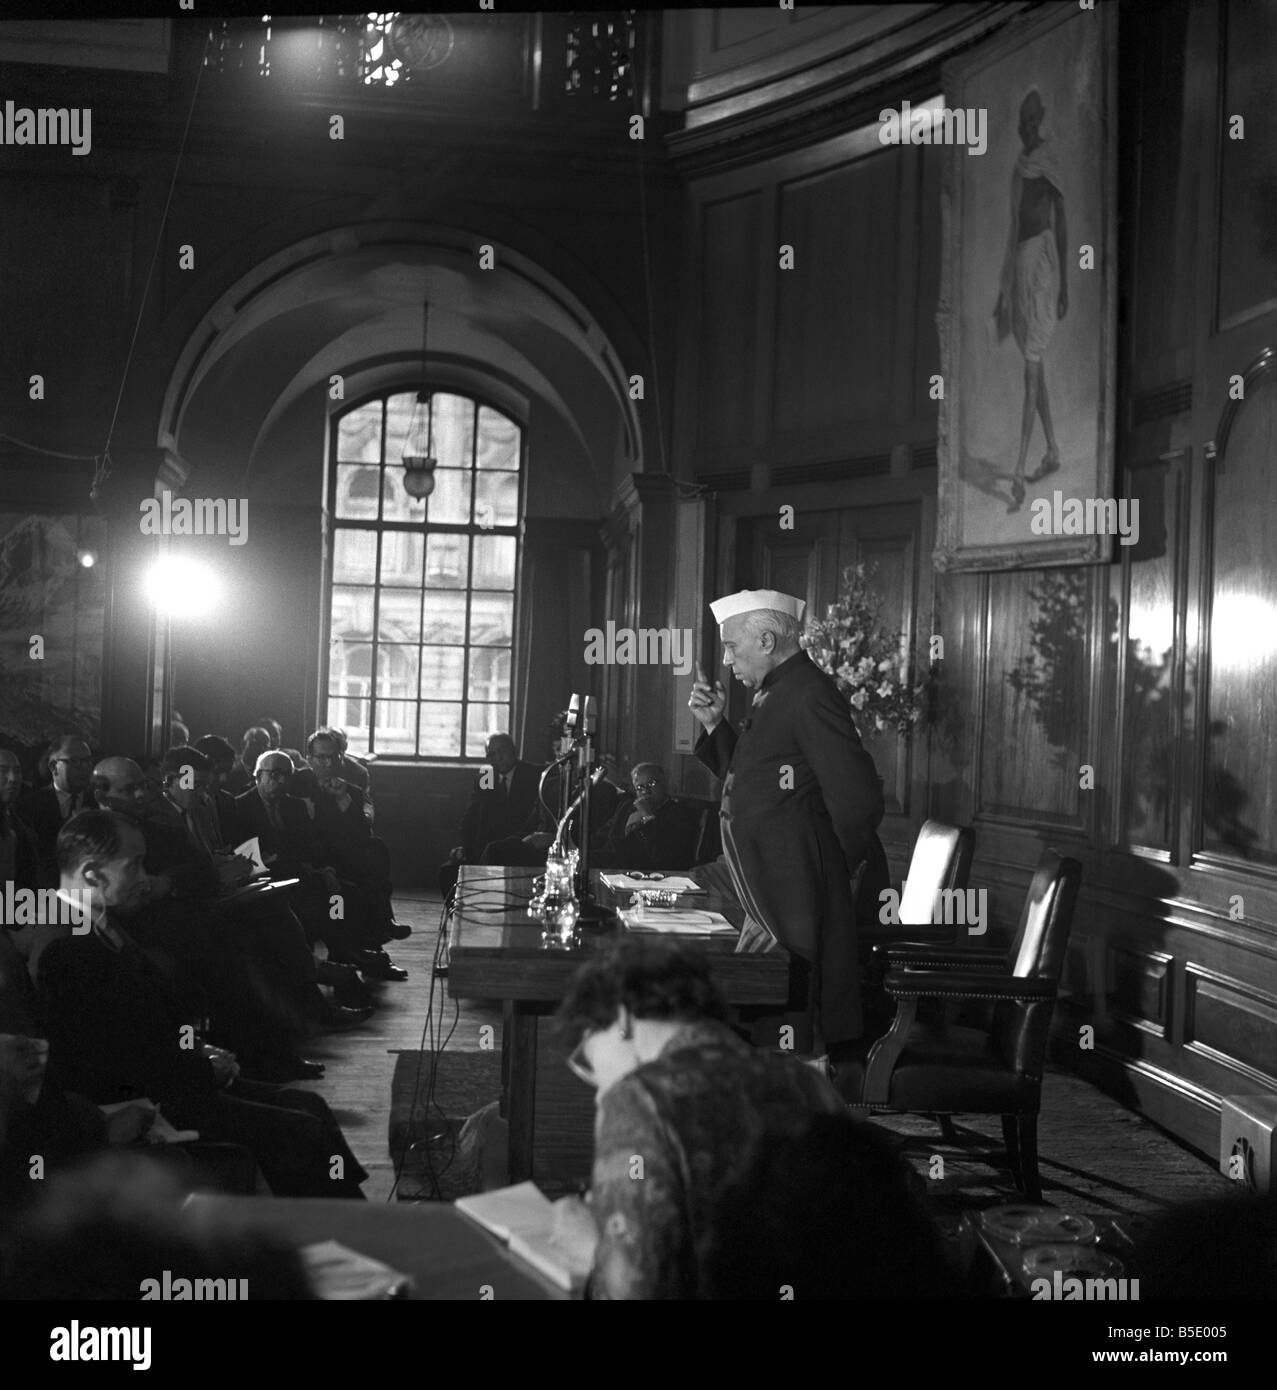 Pandit Jawaharlal Nehru at his press conference held at India House during his visit to the United Kingdom. March - Stock Image